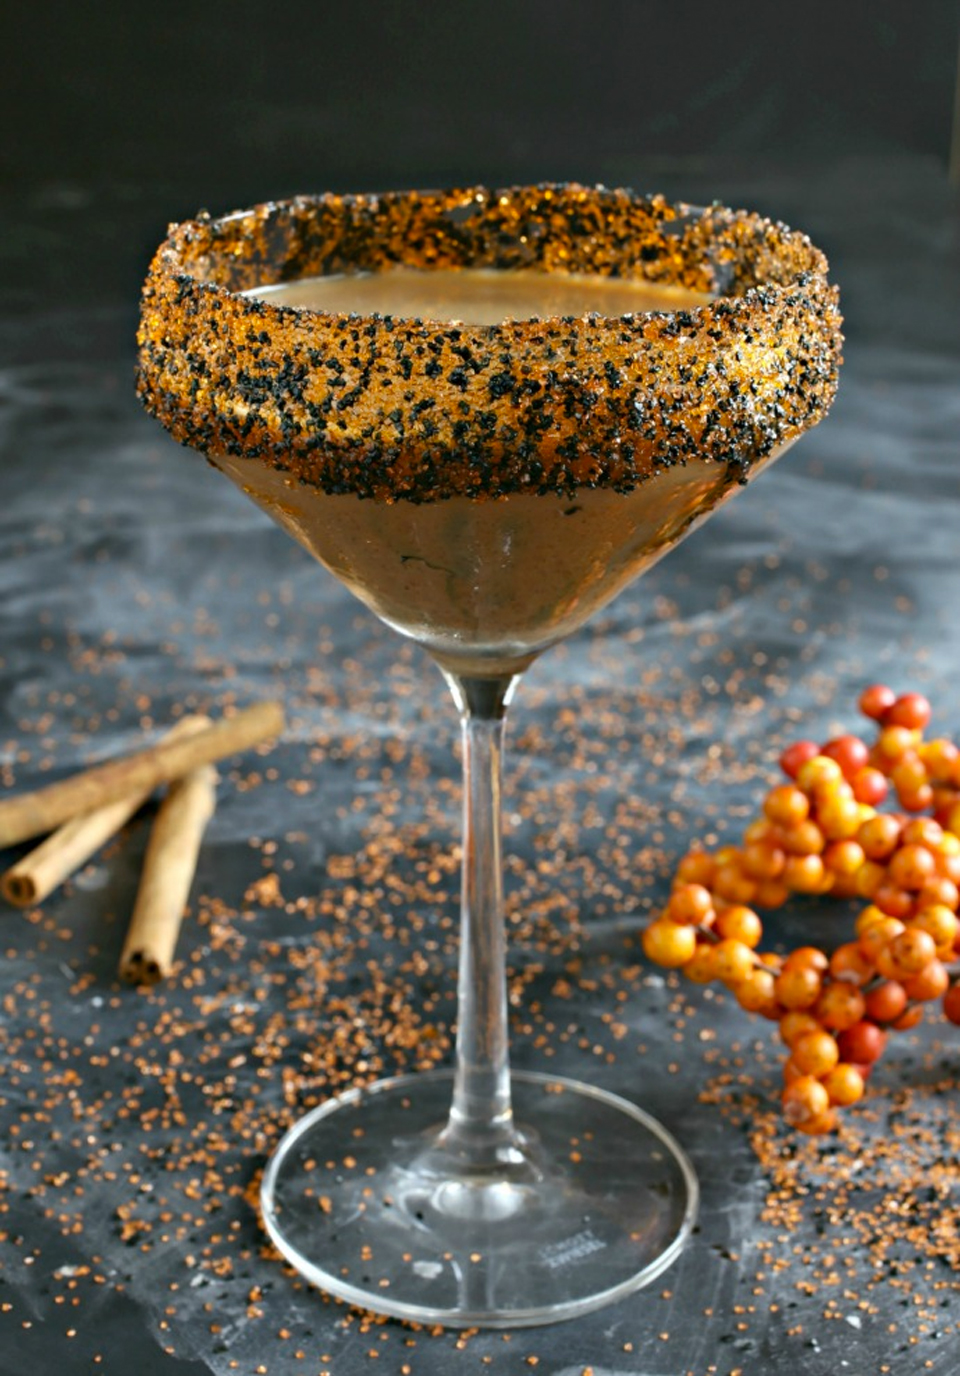 Spooky Halloween Cocktails 2018 Wicked Chocolate Pumpkin Smash Cocktail